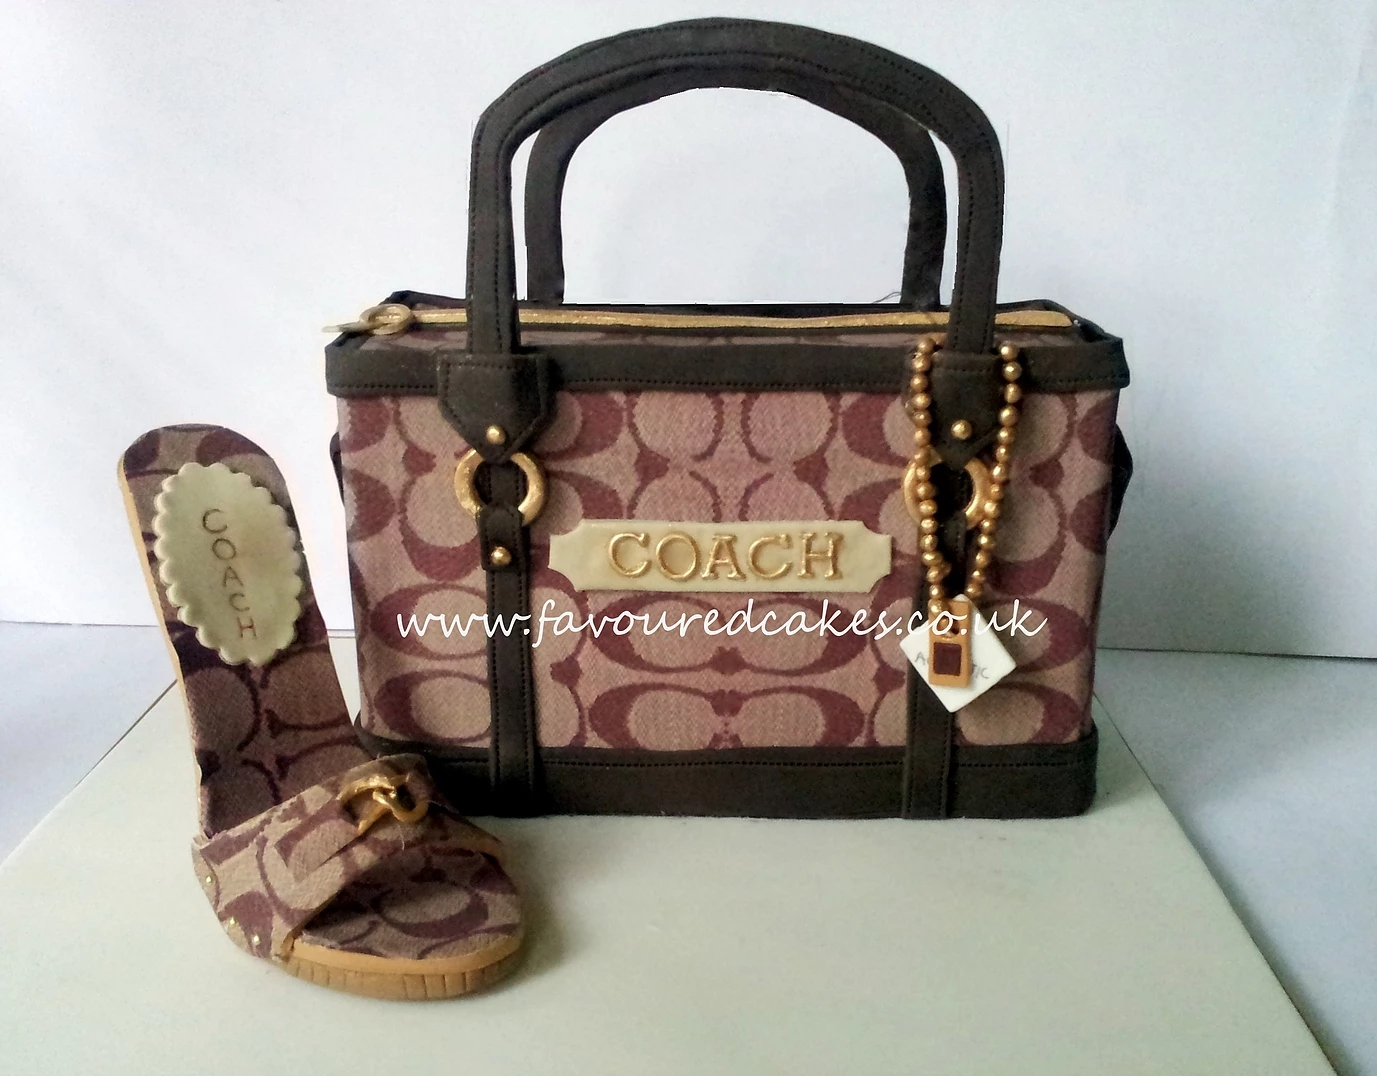 Coach Shoe and Bag Cake Coach Shoe and Bag Cake